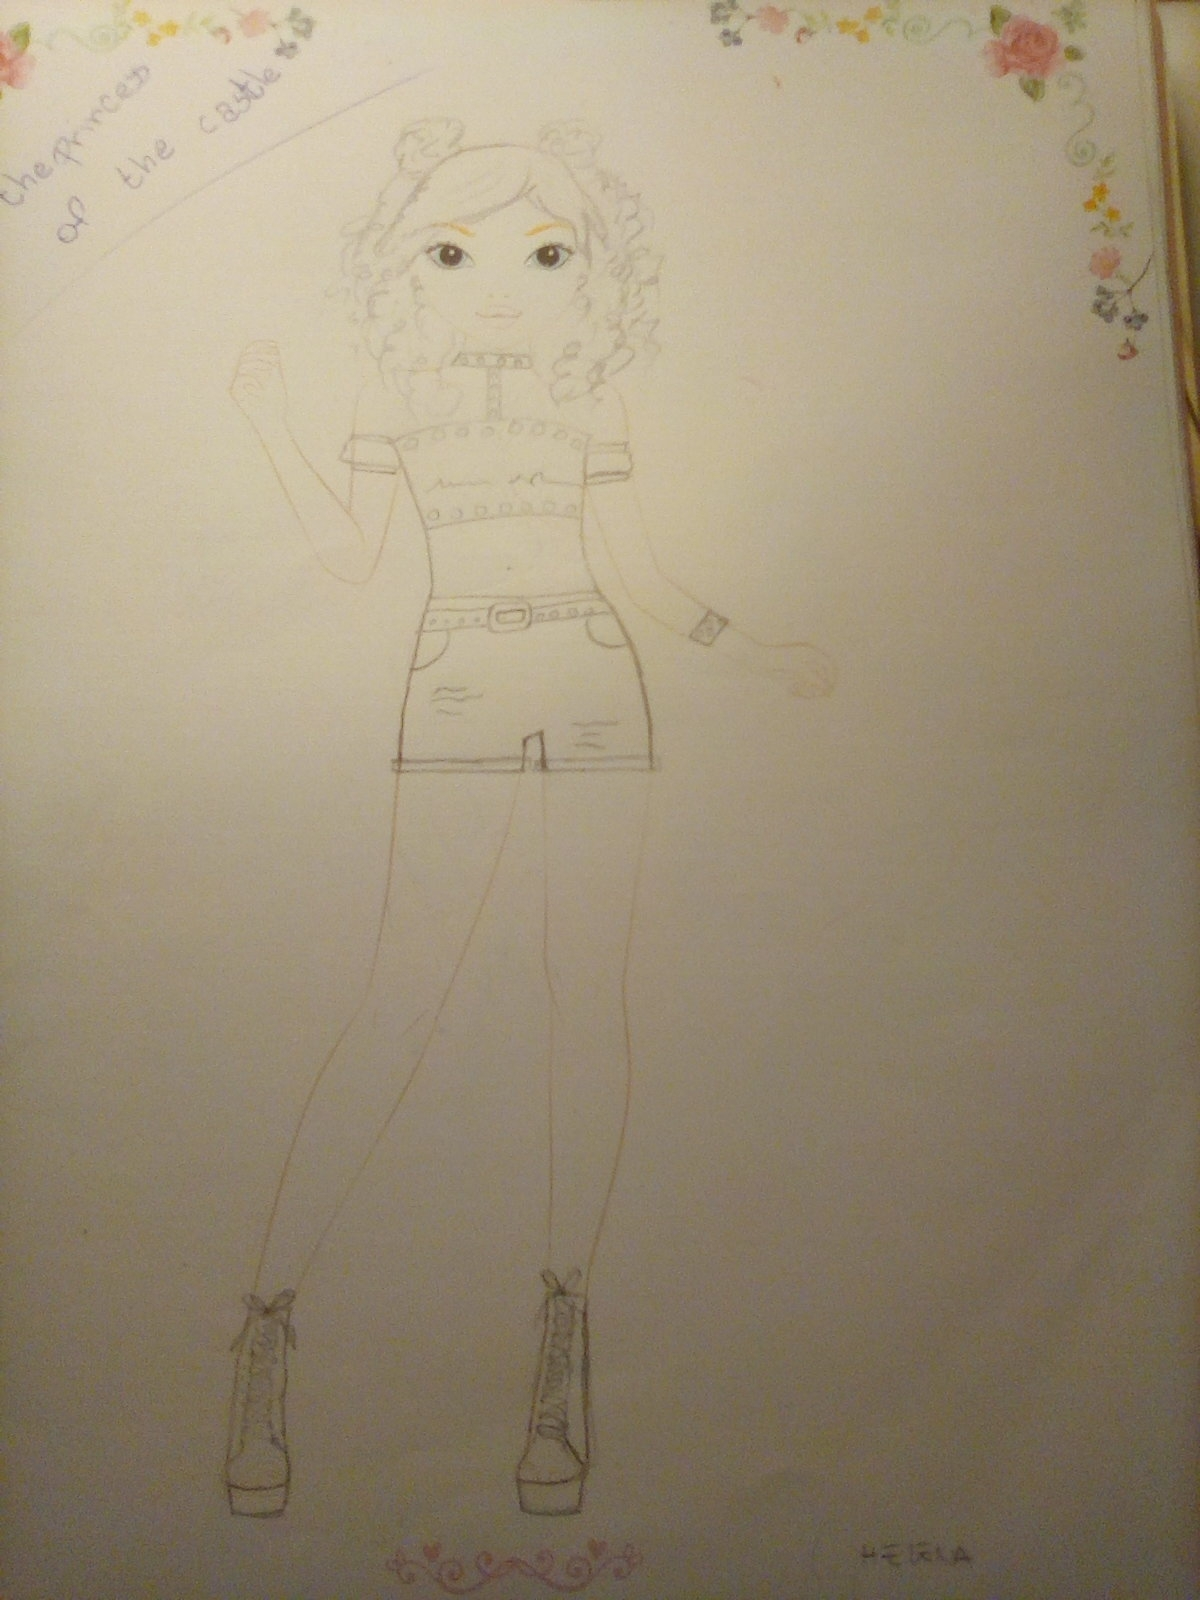 Elisa C., 11years, from Milano